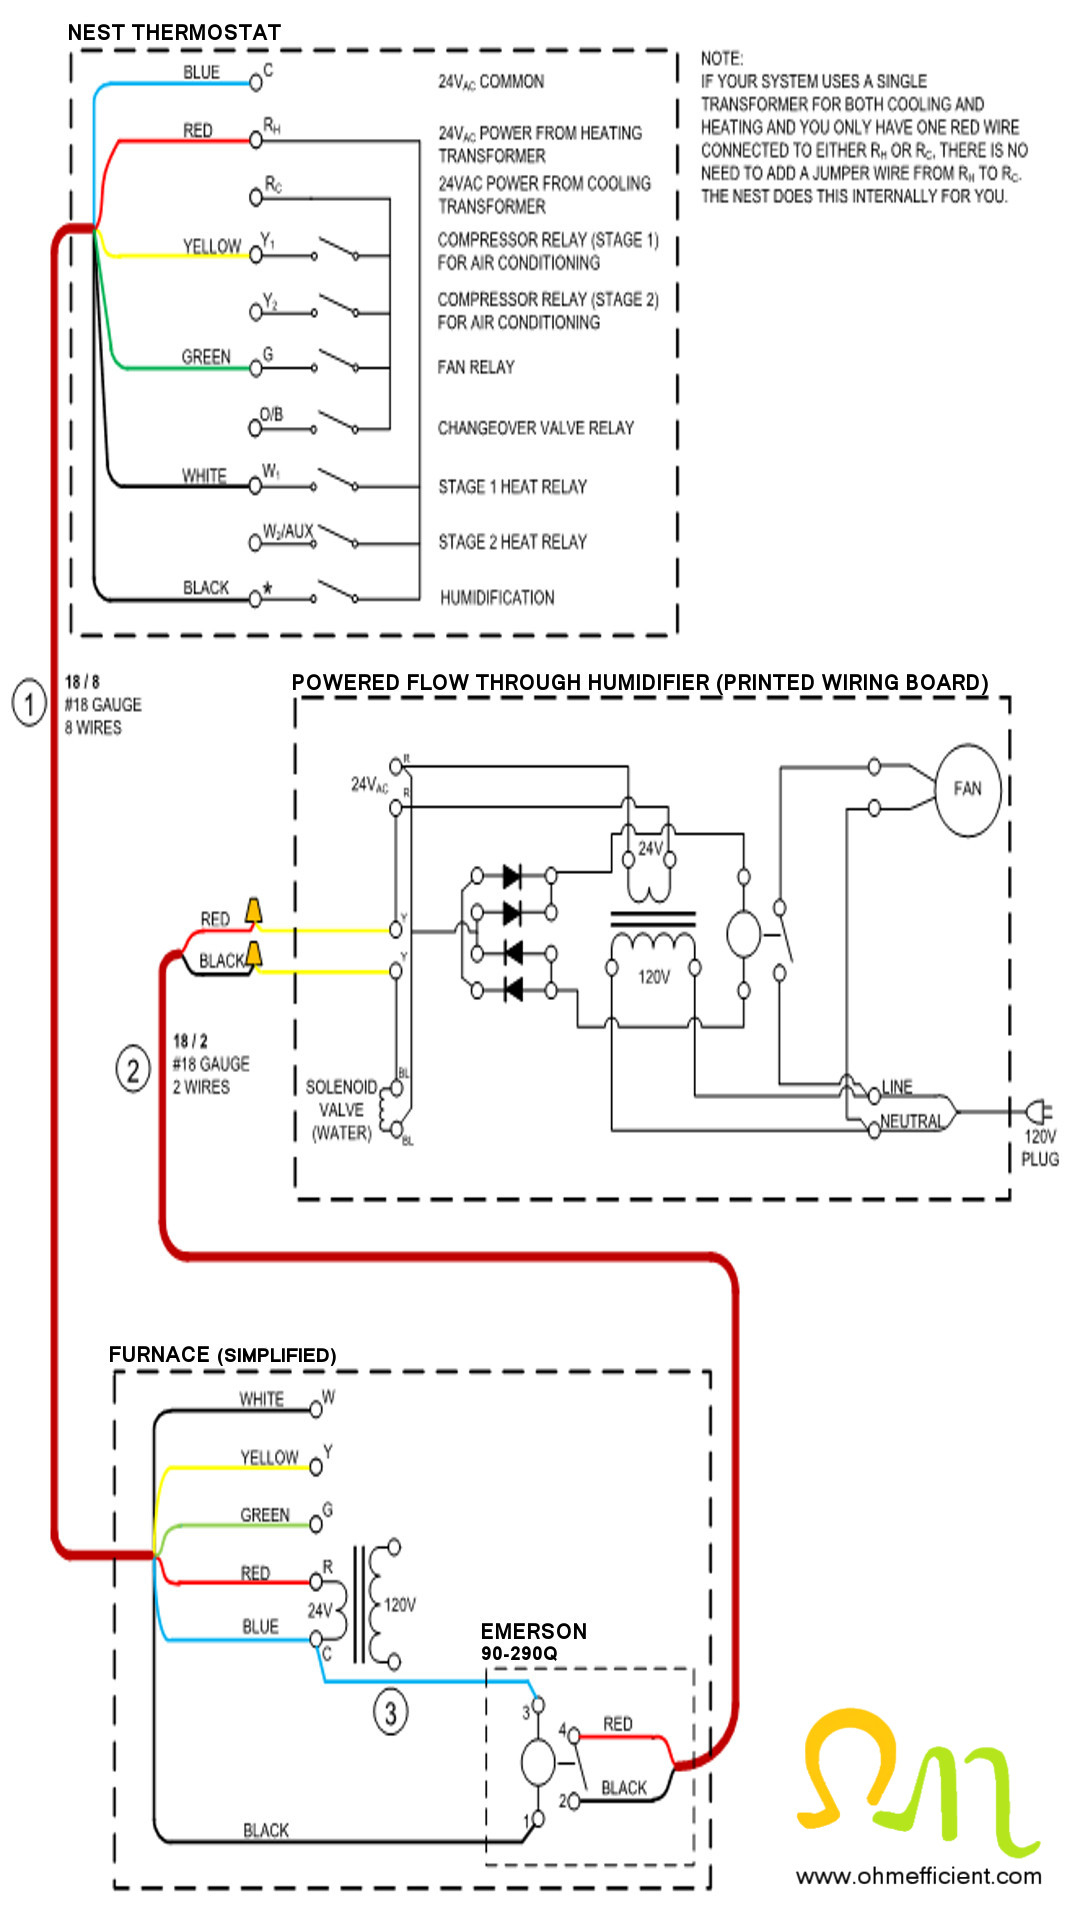 Nest Thermostat Wiring Diagram For 2 Stage Cooling 2 Stage Heat